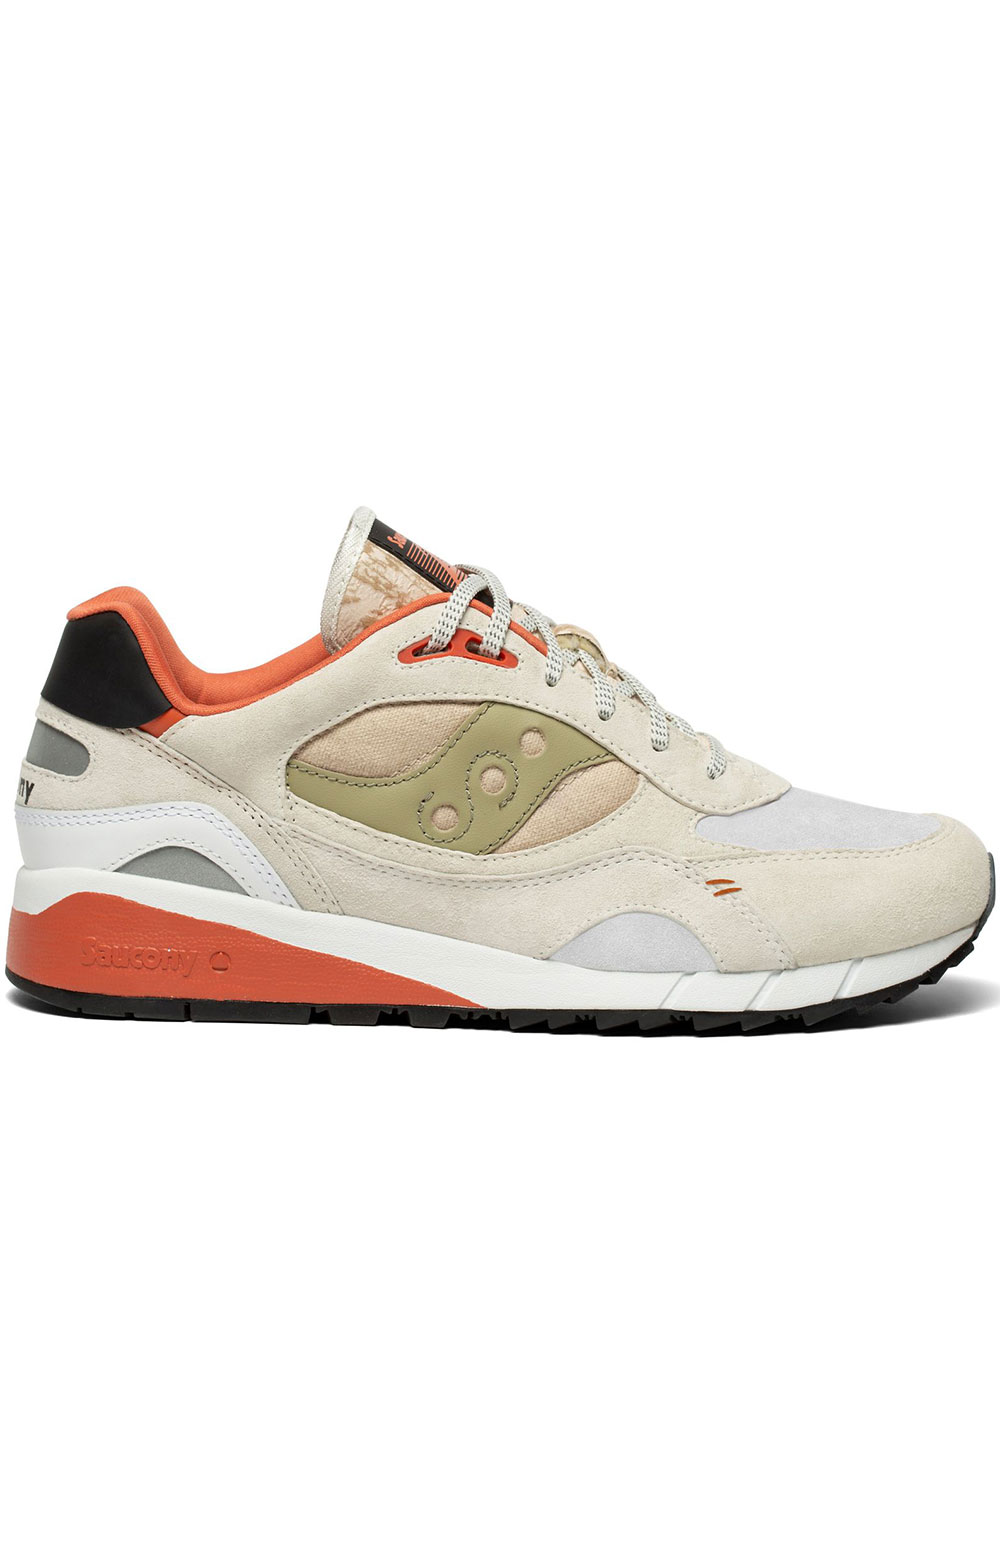 (S70587-3) Shadow 6000 Shoes - White/Clay